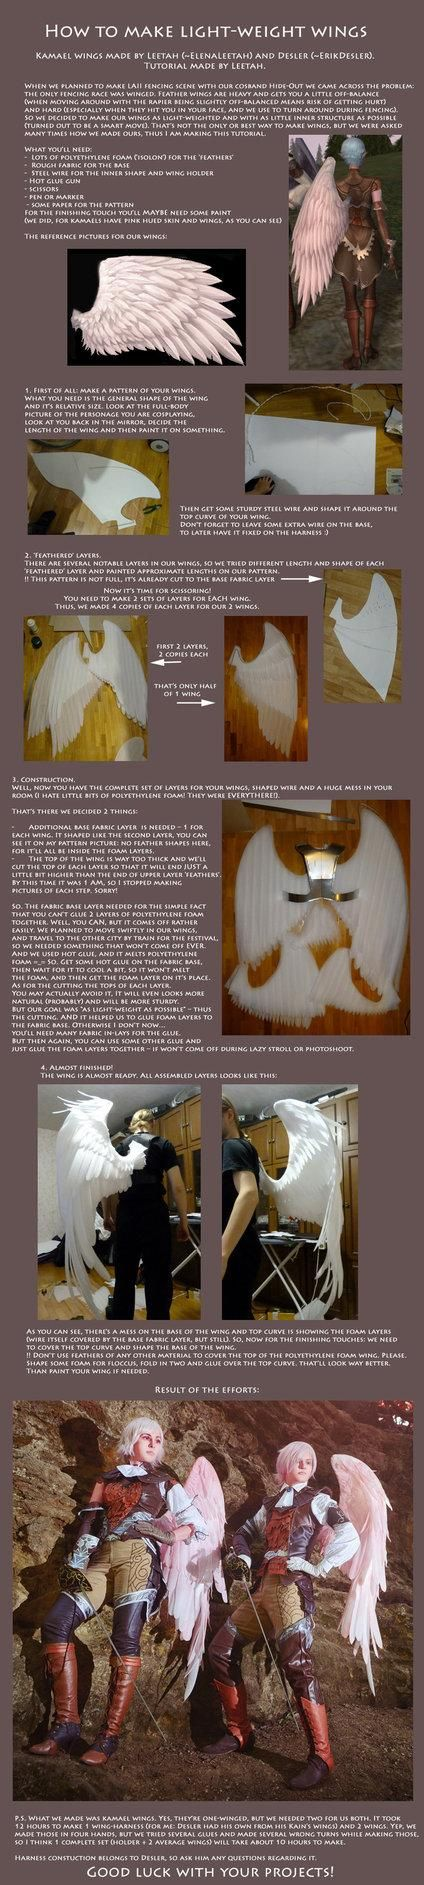 DIY How to Make Lightweight Wings Where do you get this foam stuff? I need wings for my Weeping Angel costume...